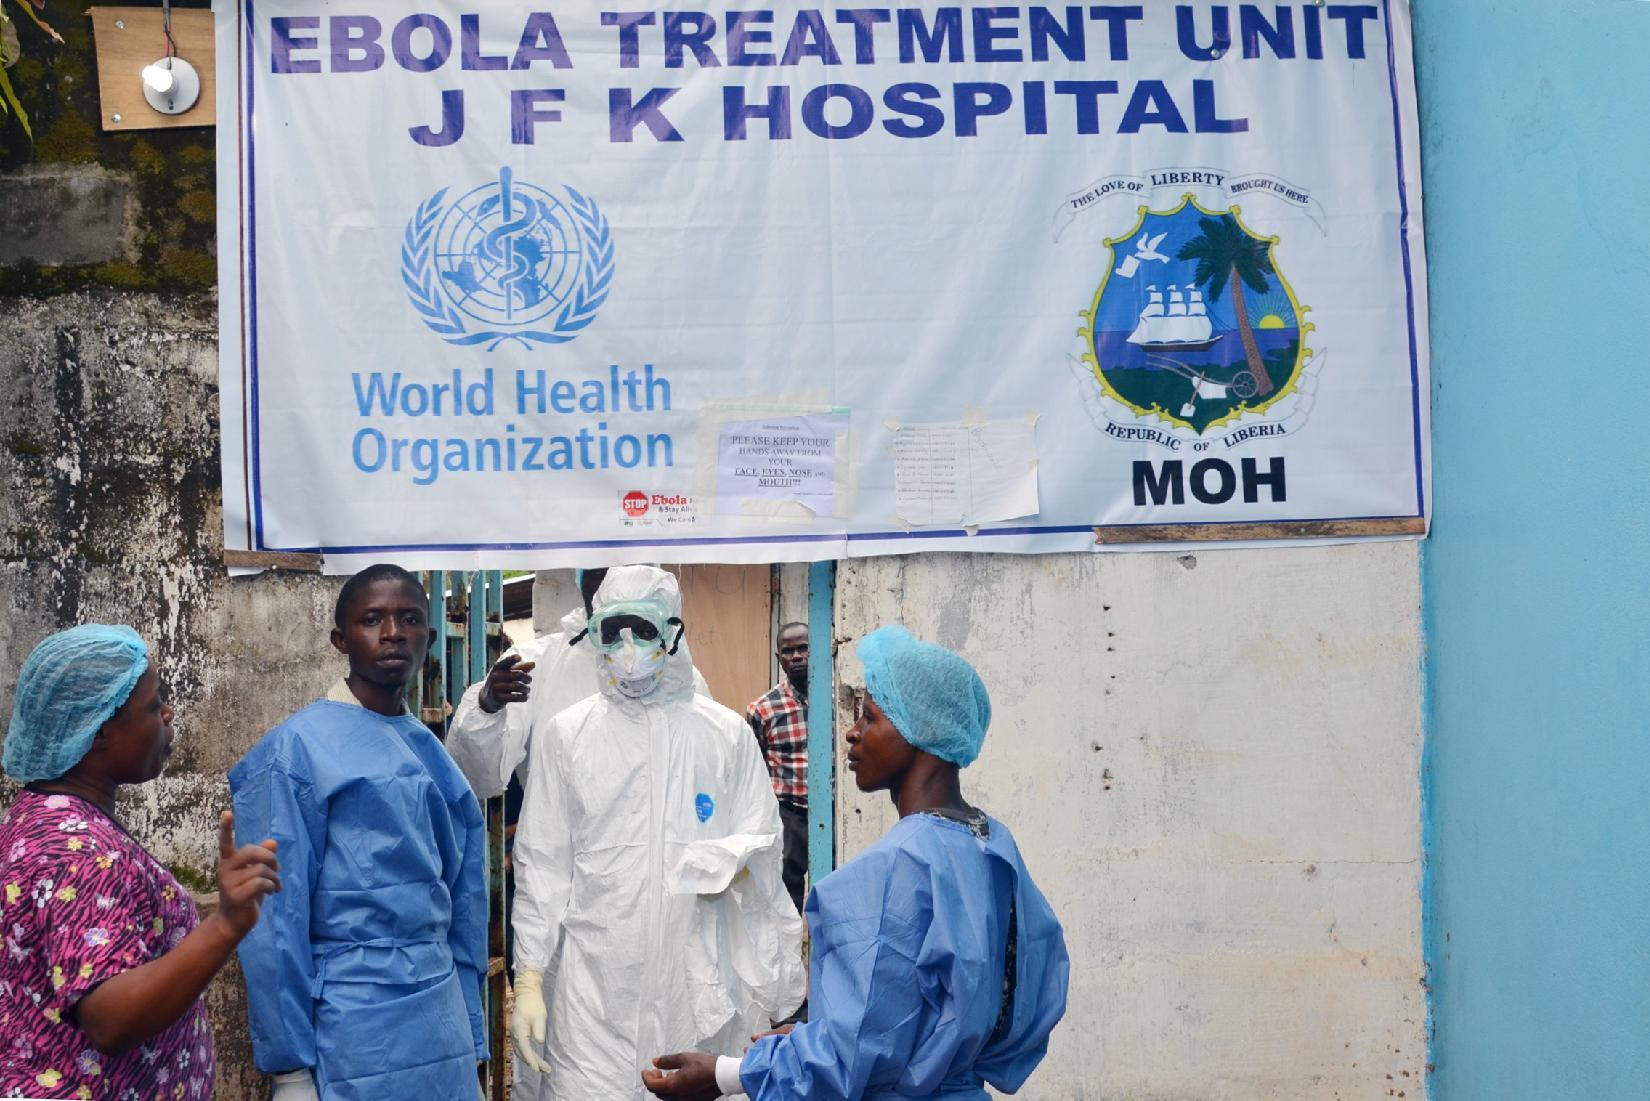 Health workers in protective gear stand at the entrance of the Ebola treatment unit of the John F. Kennedy Medical Center in the Liberian capital Monrovia on October 13, 2014